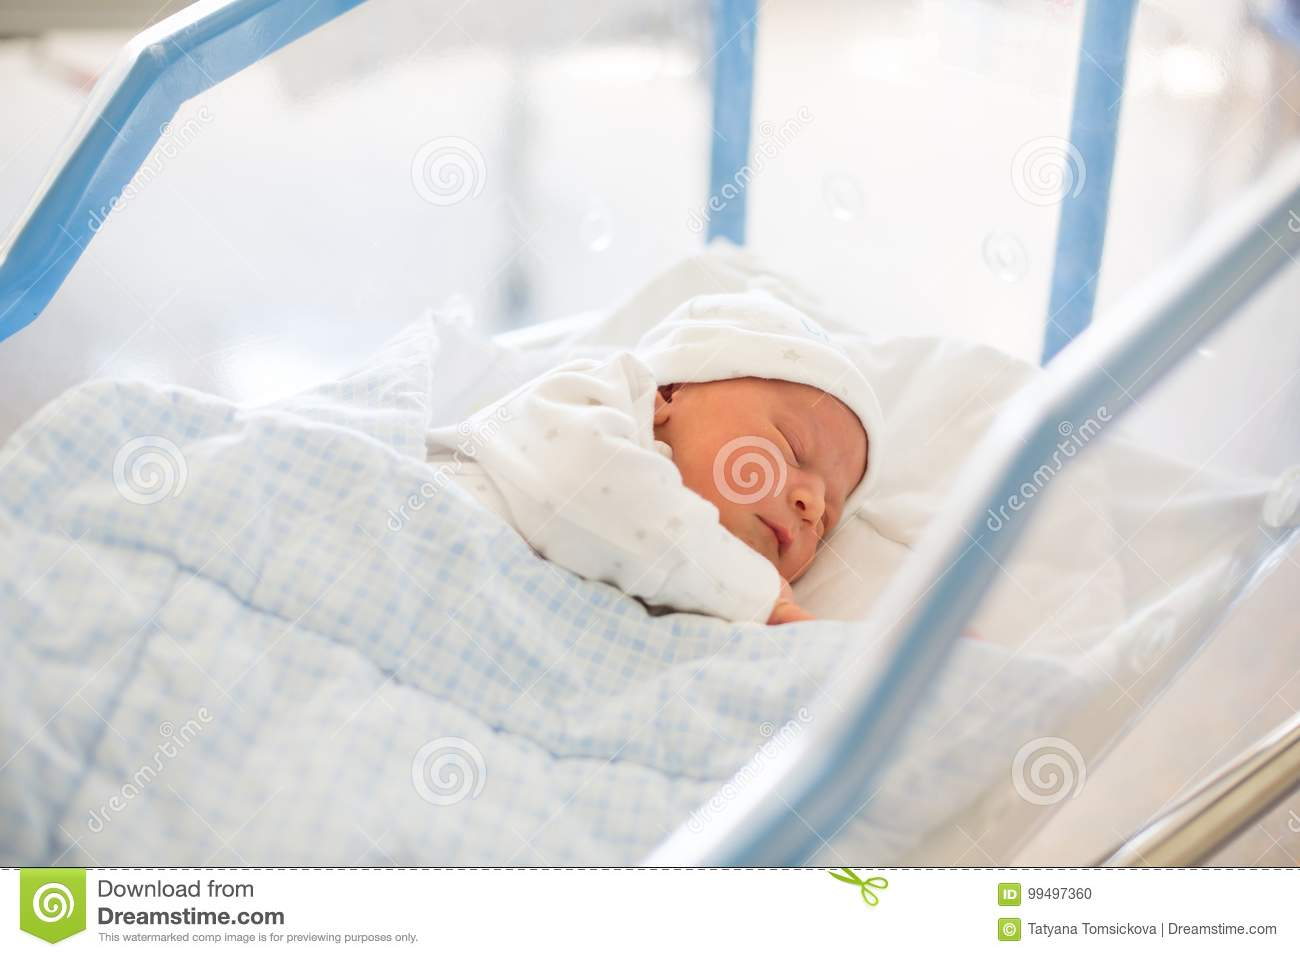 Ongekend Newborn Baby Laying In Crib In Prenatal Hospital Stock Photo OW-47